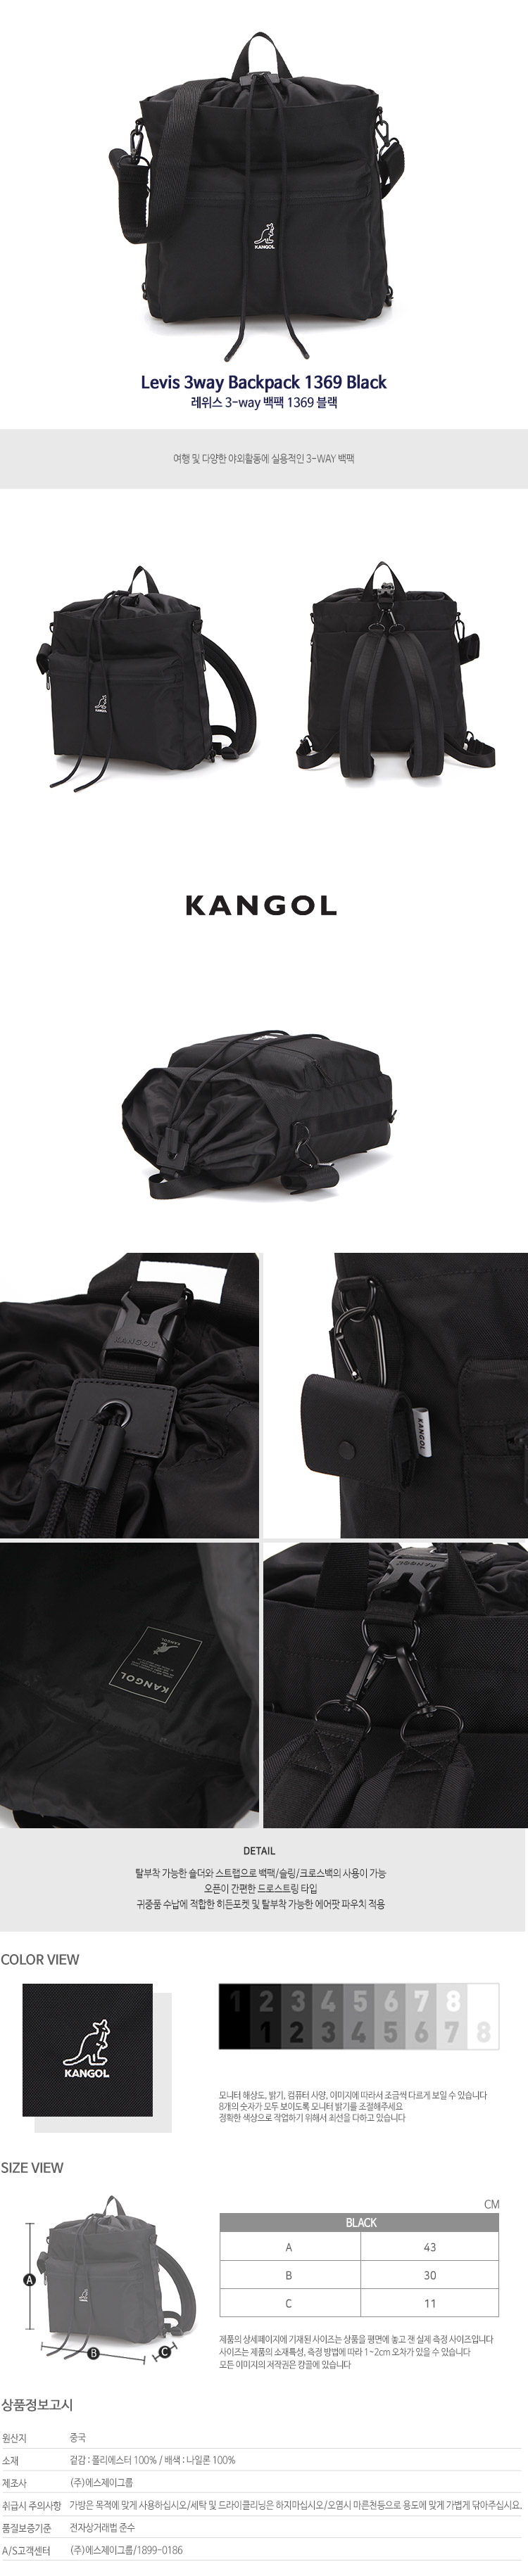 Levis 3way Backpack 1369 BLACK